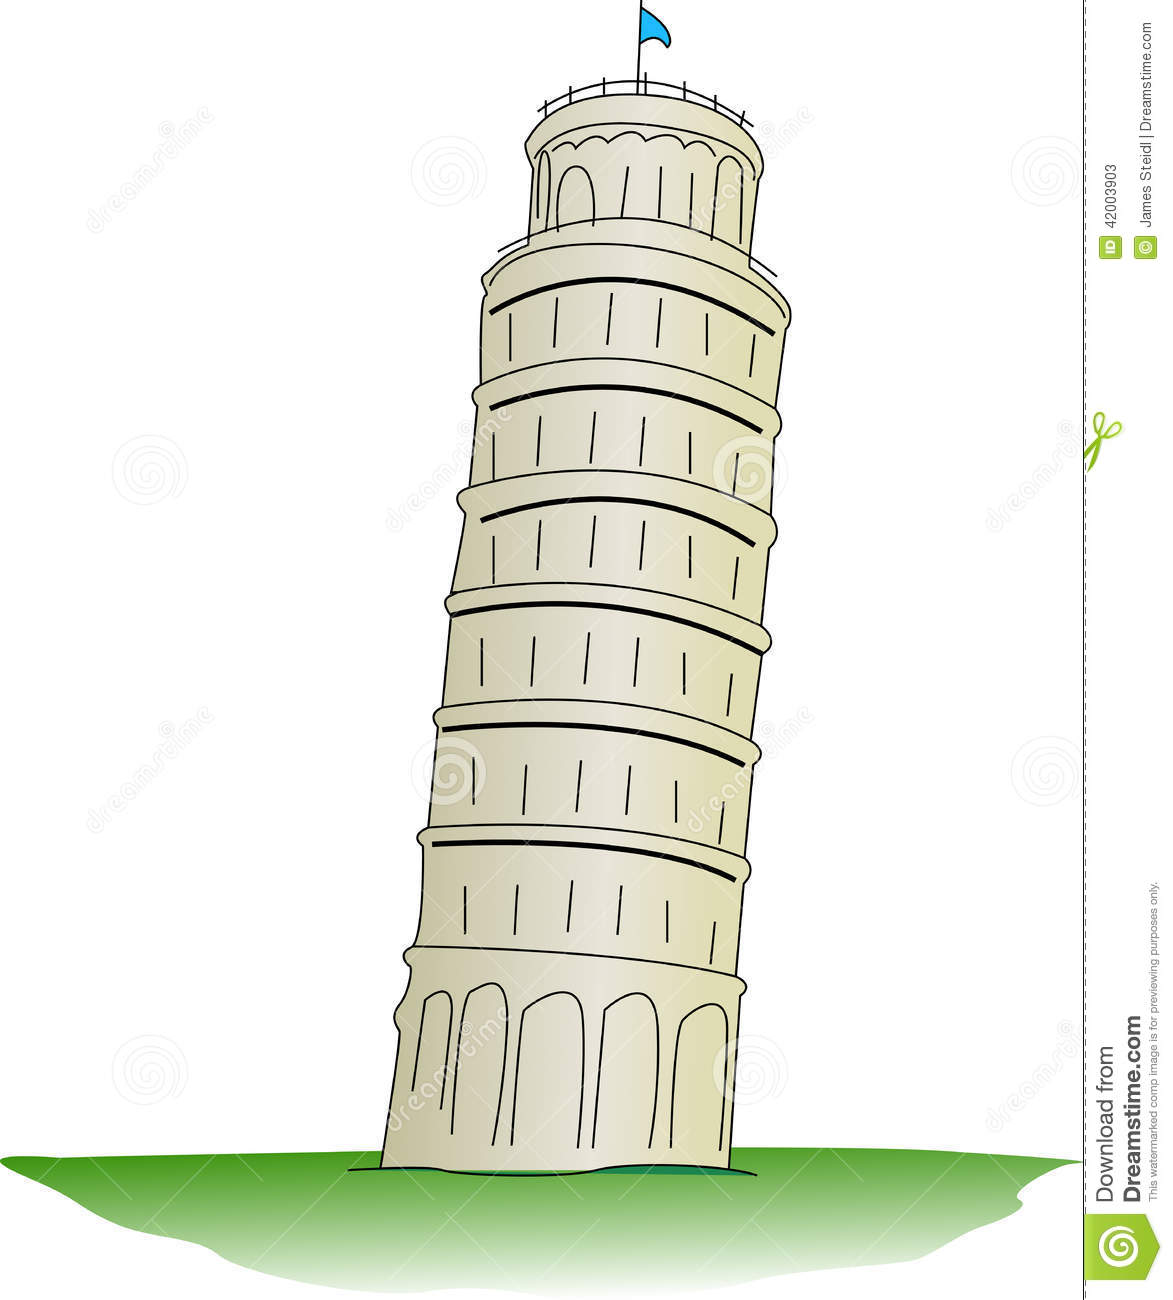 Leaning Tower Pisa Clip Art on coloring map of the united states